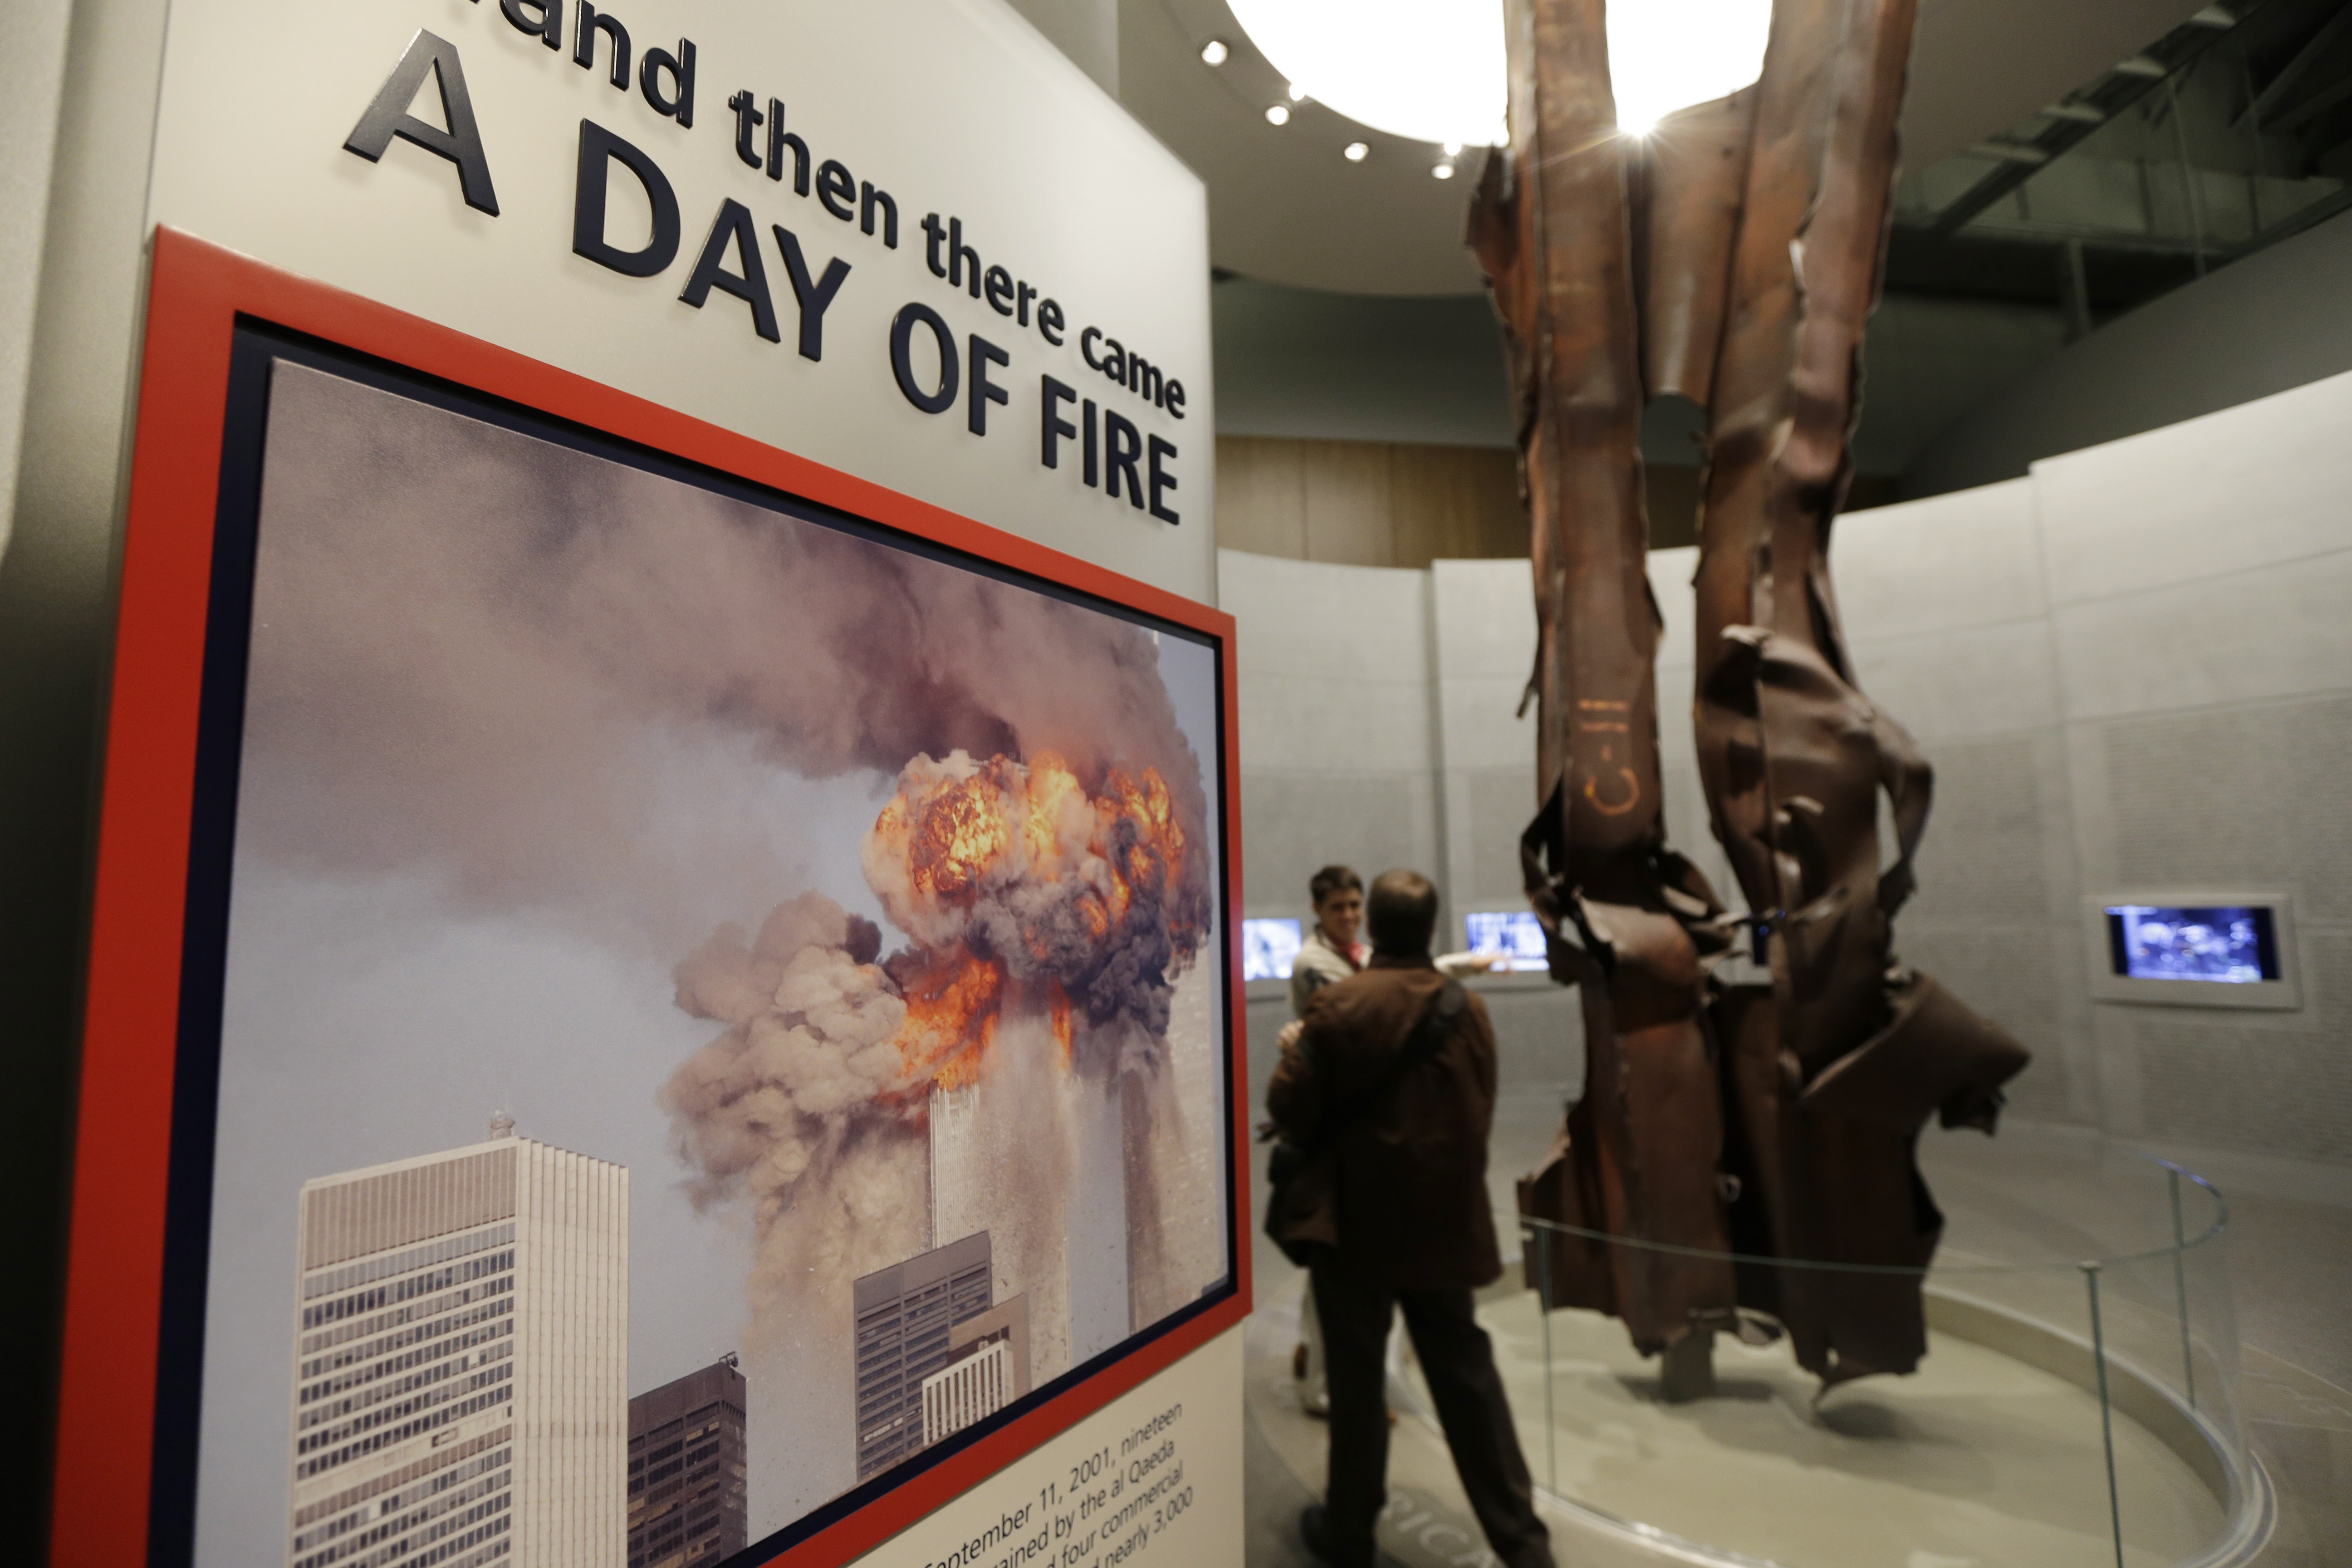 Beams damaged at New York's World Trade Center during the terrorist attacks on Sept. 11, 2001 are on display.